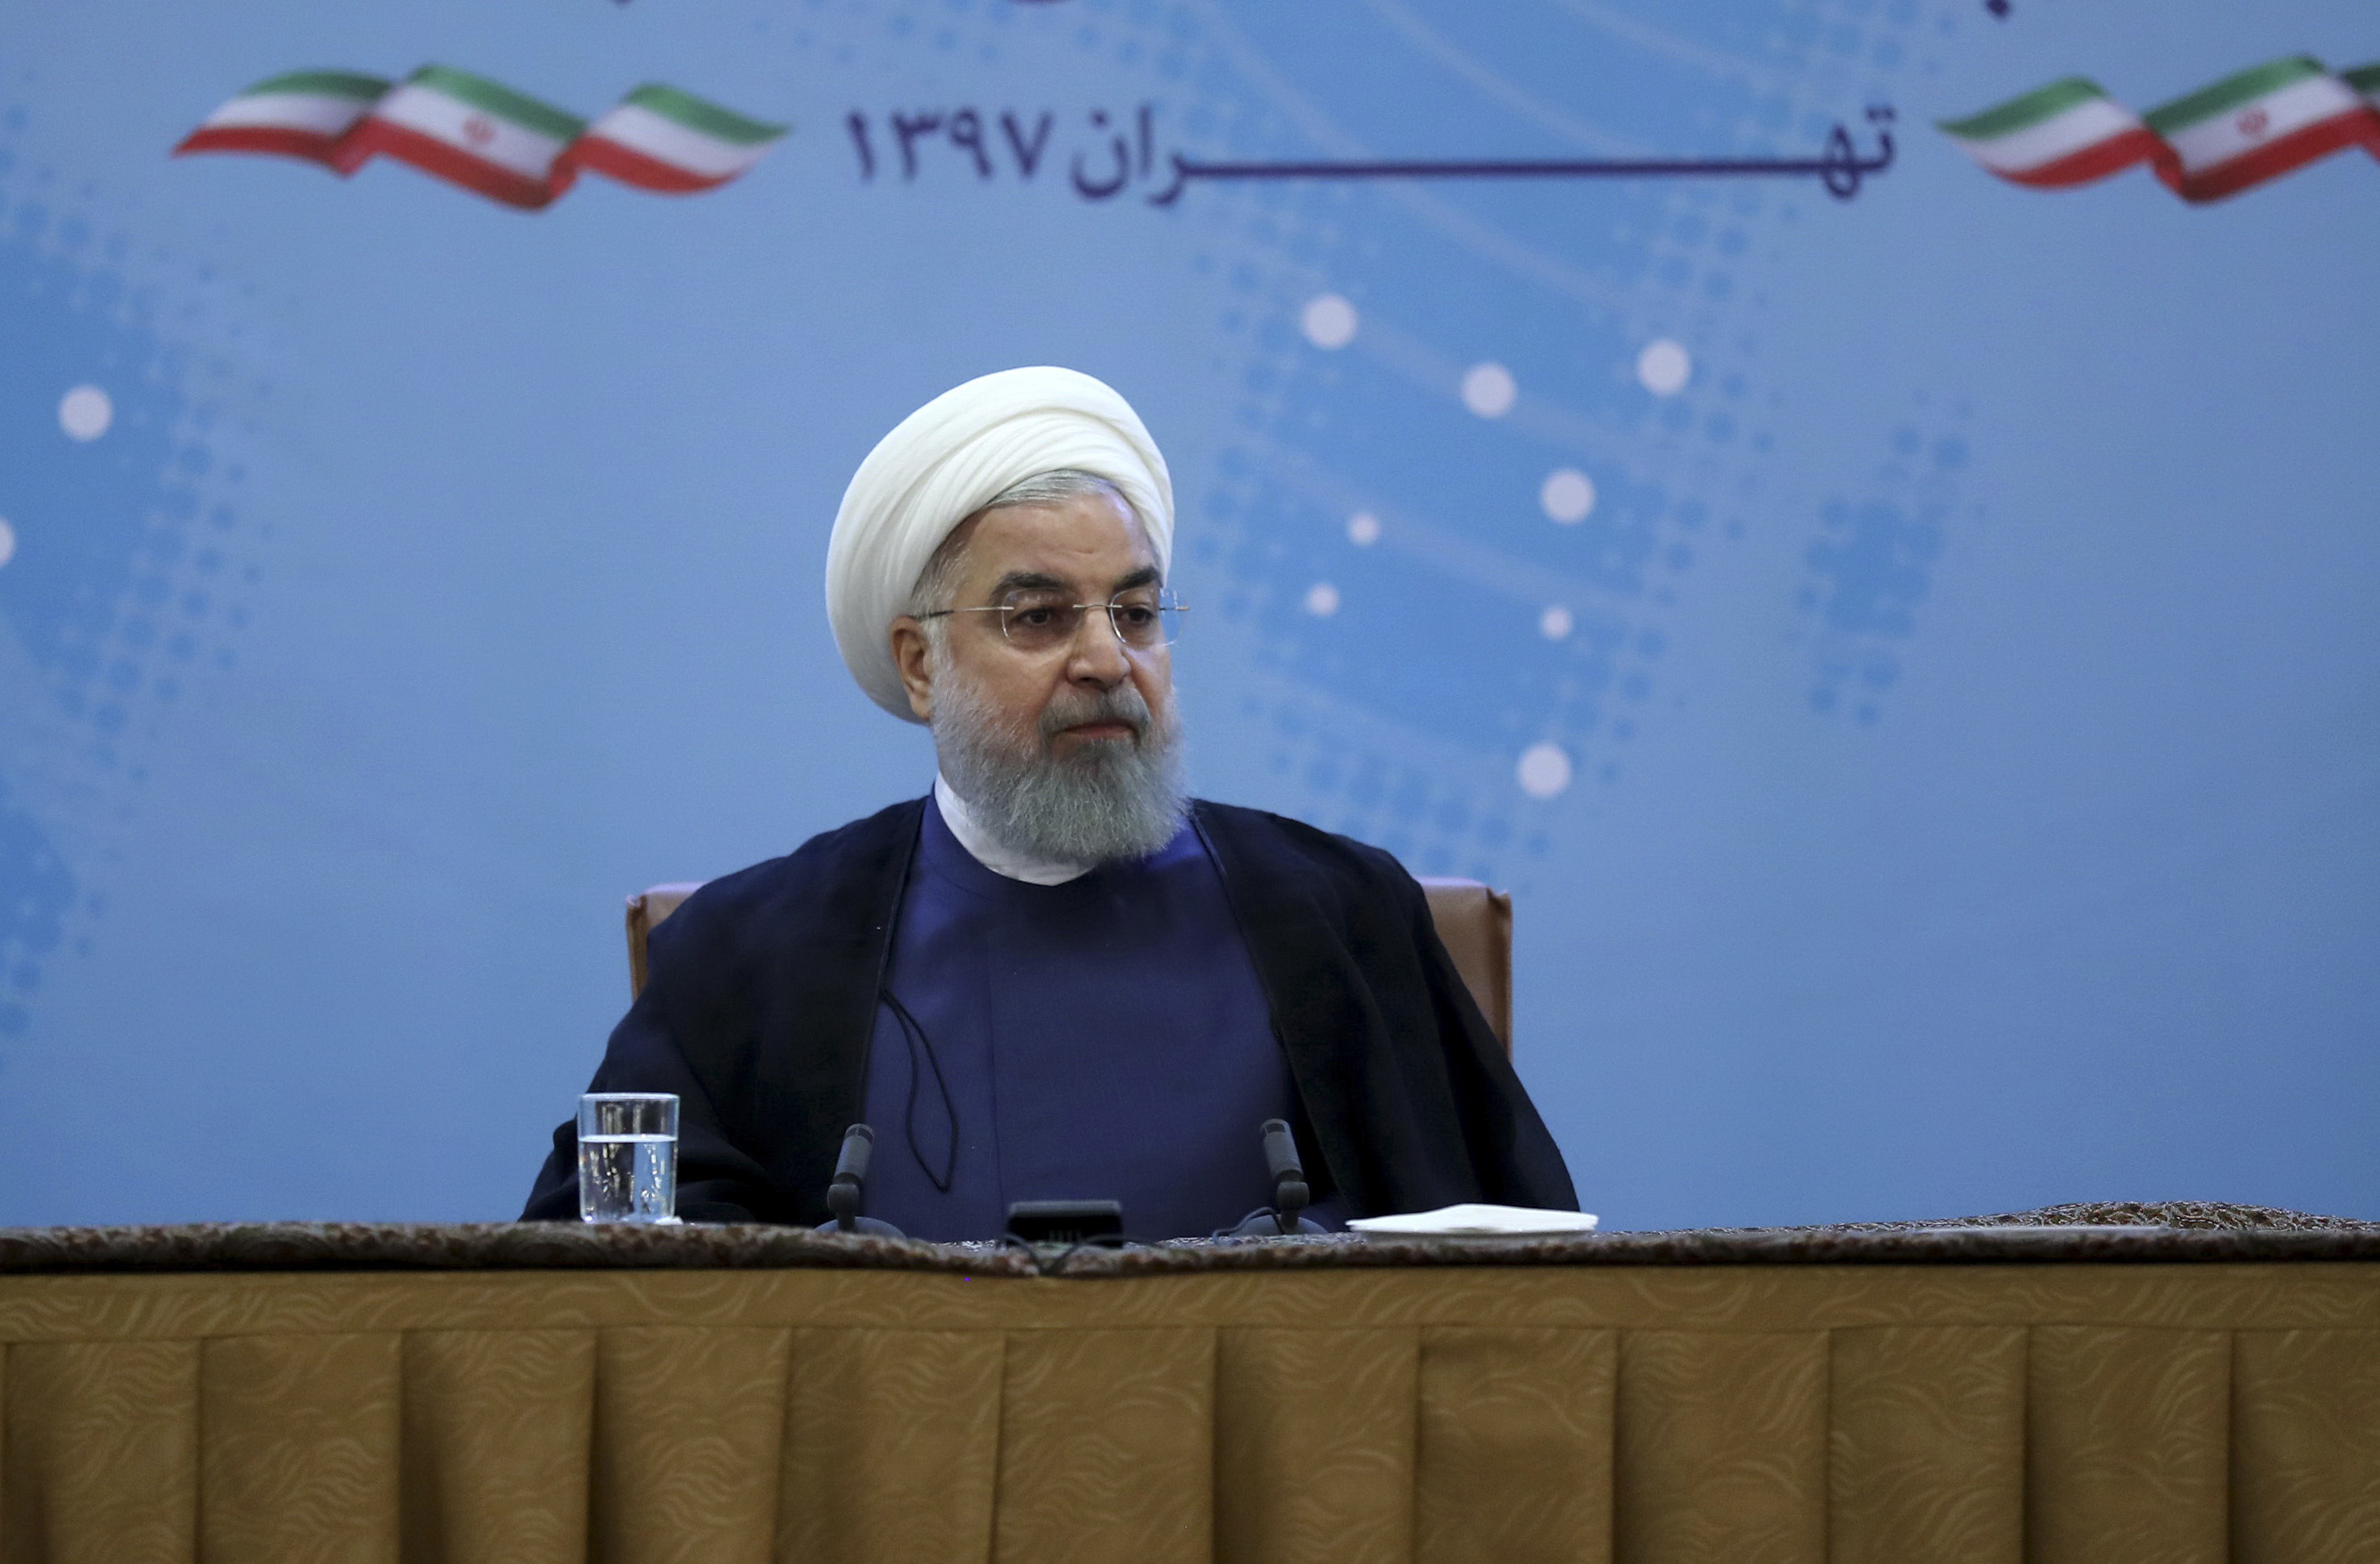 Trump says he would meet Iran's leader without preconditions